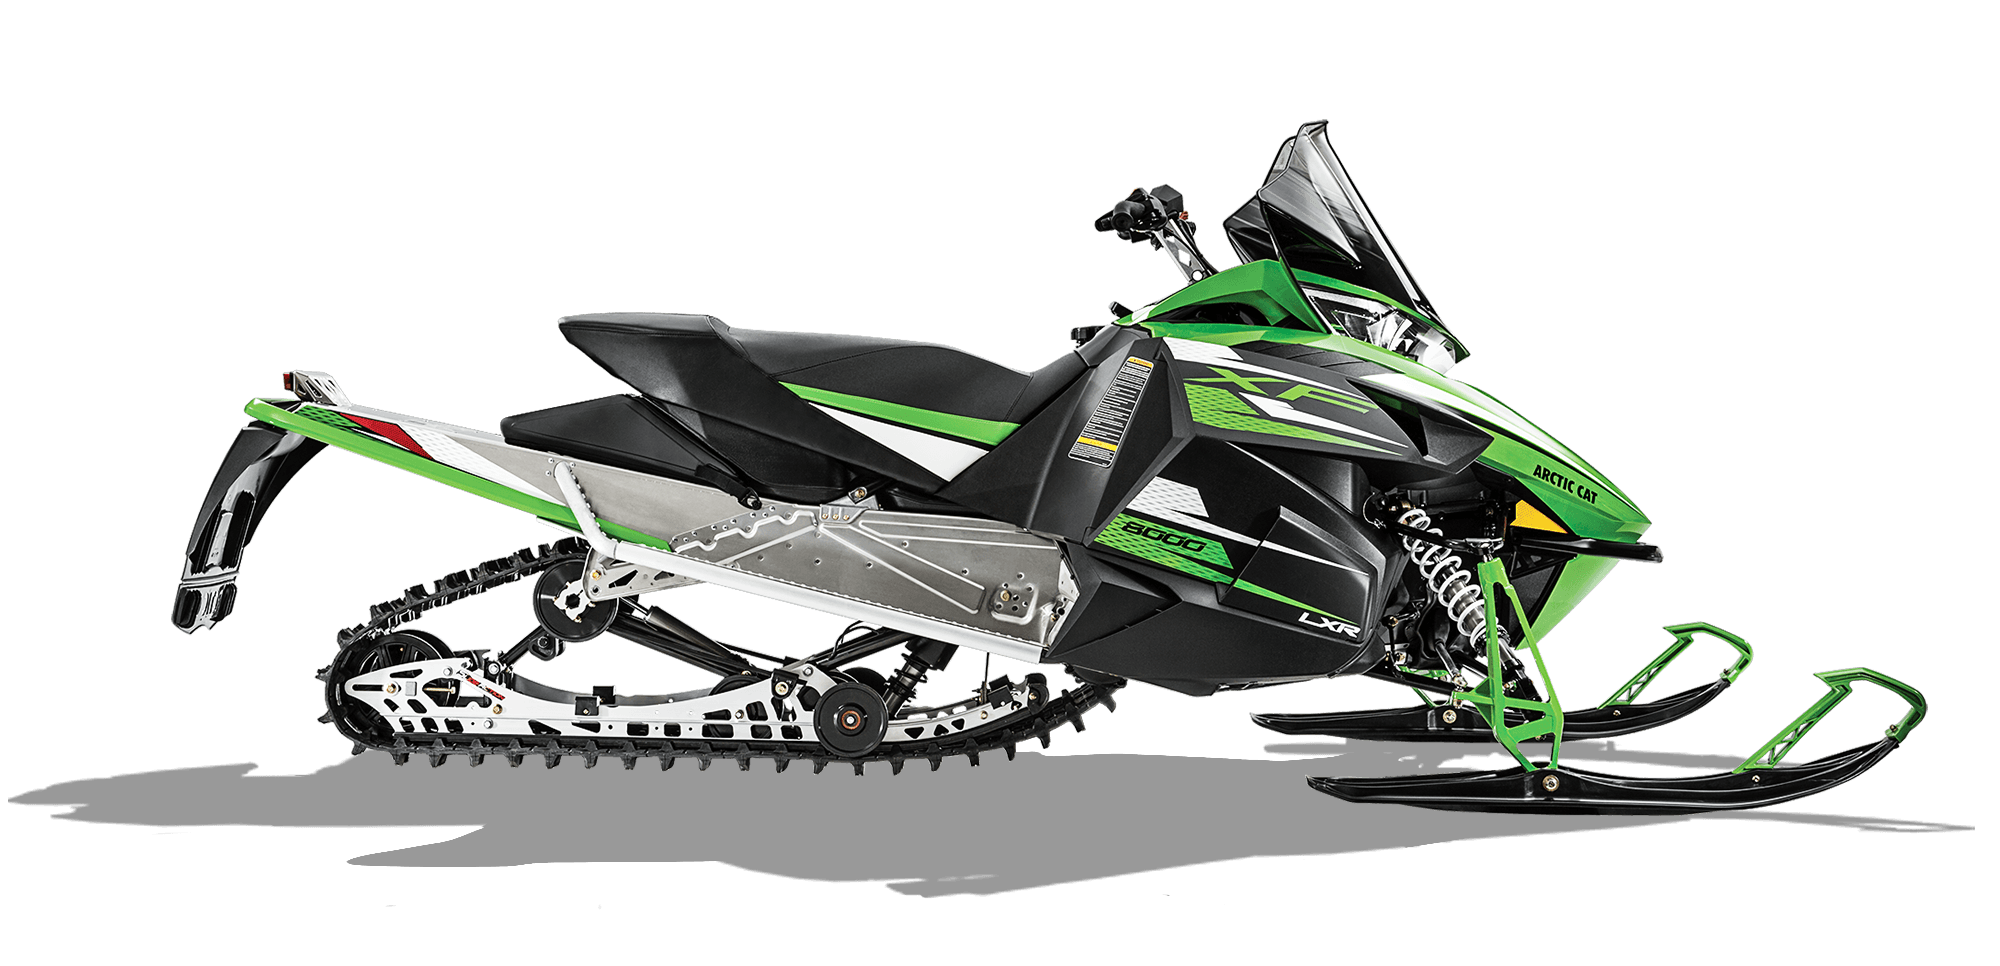 Artic cat snowmobile clipart black and white svg library download Models Archive | Arctic Cat svg library download